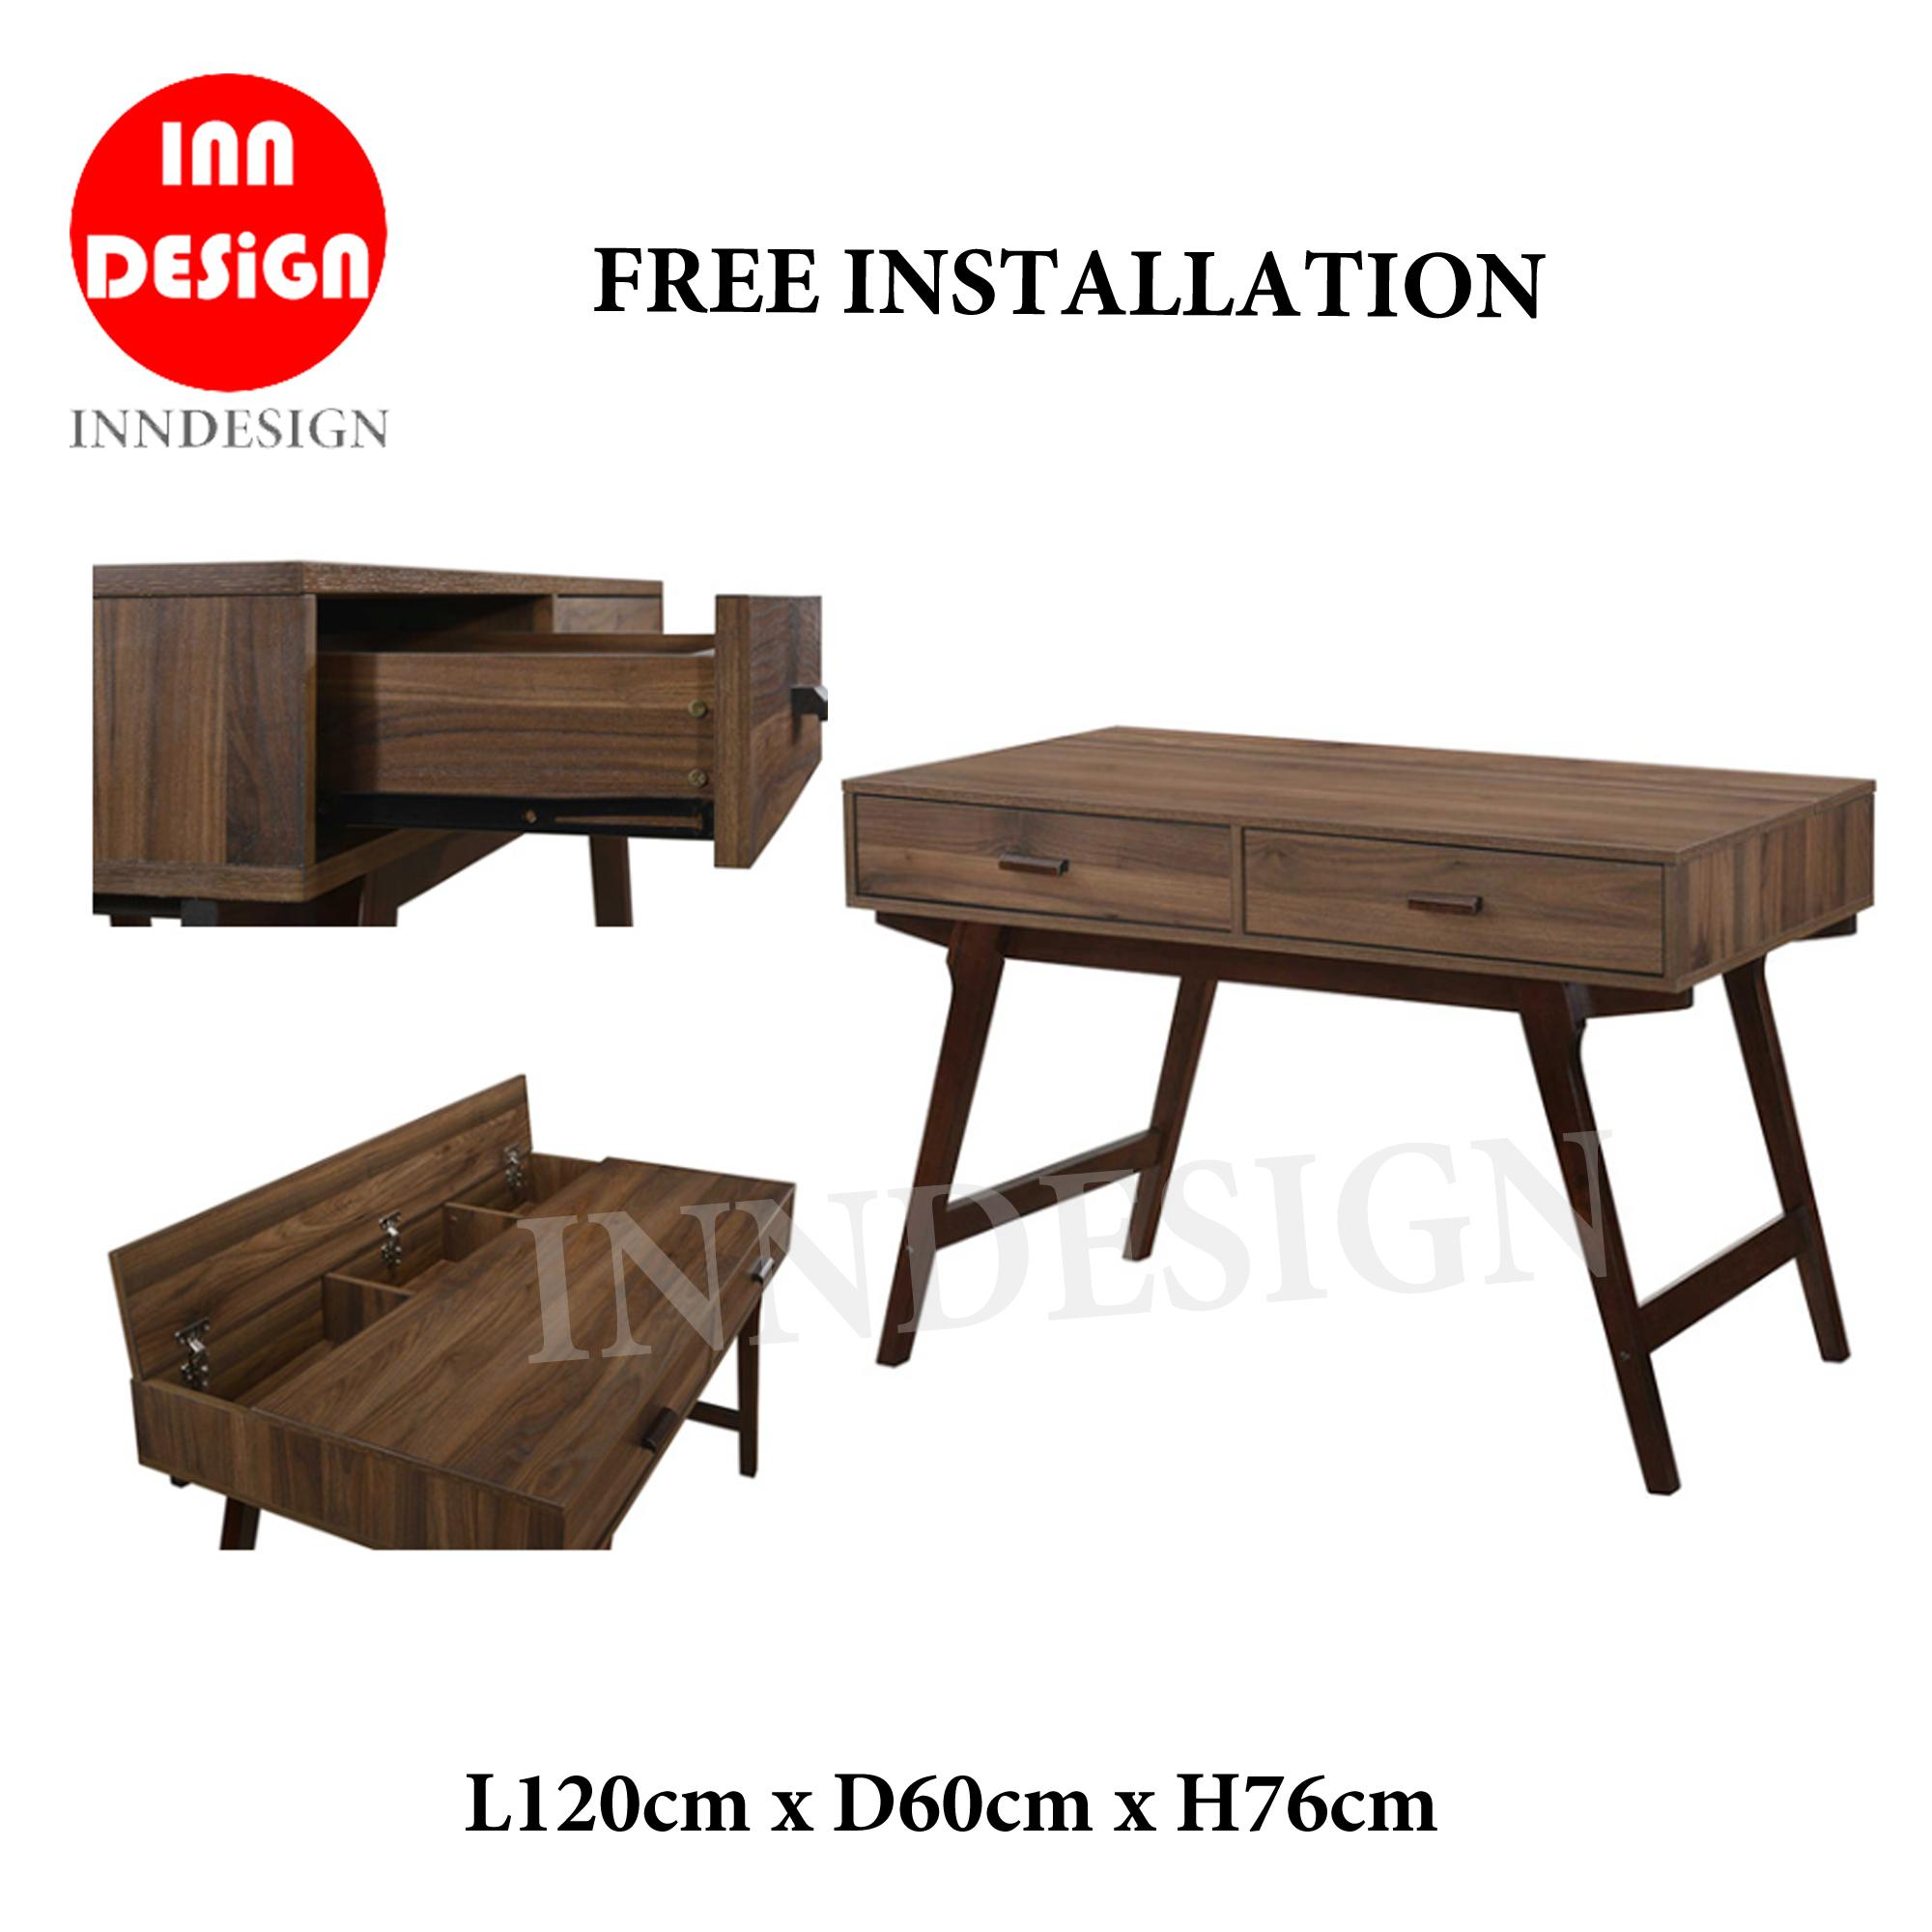 Edda Study Table (Free Delivery and Installation)